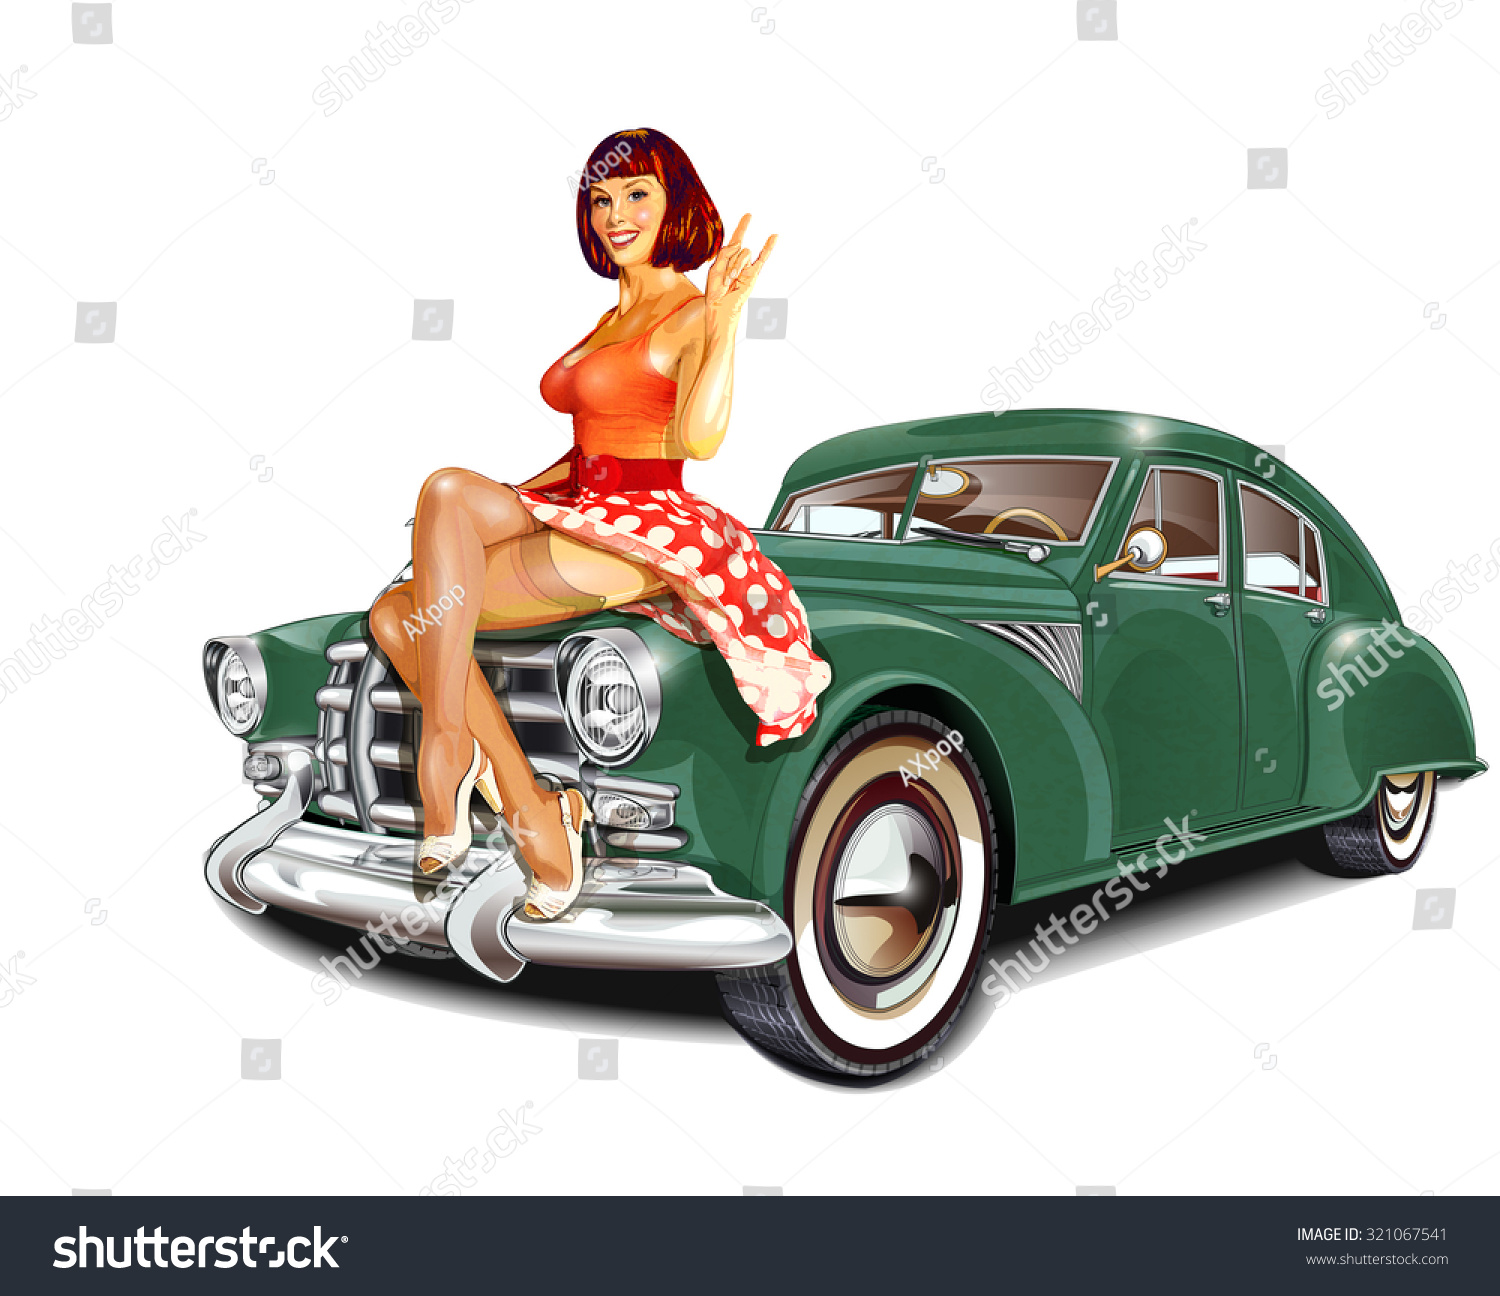 Car Garage For Rent >> Royalty-free Pin-up girl and retro car isolated on ...